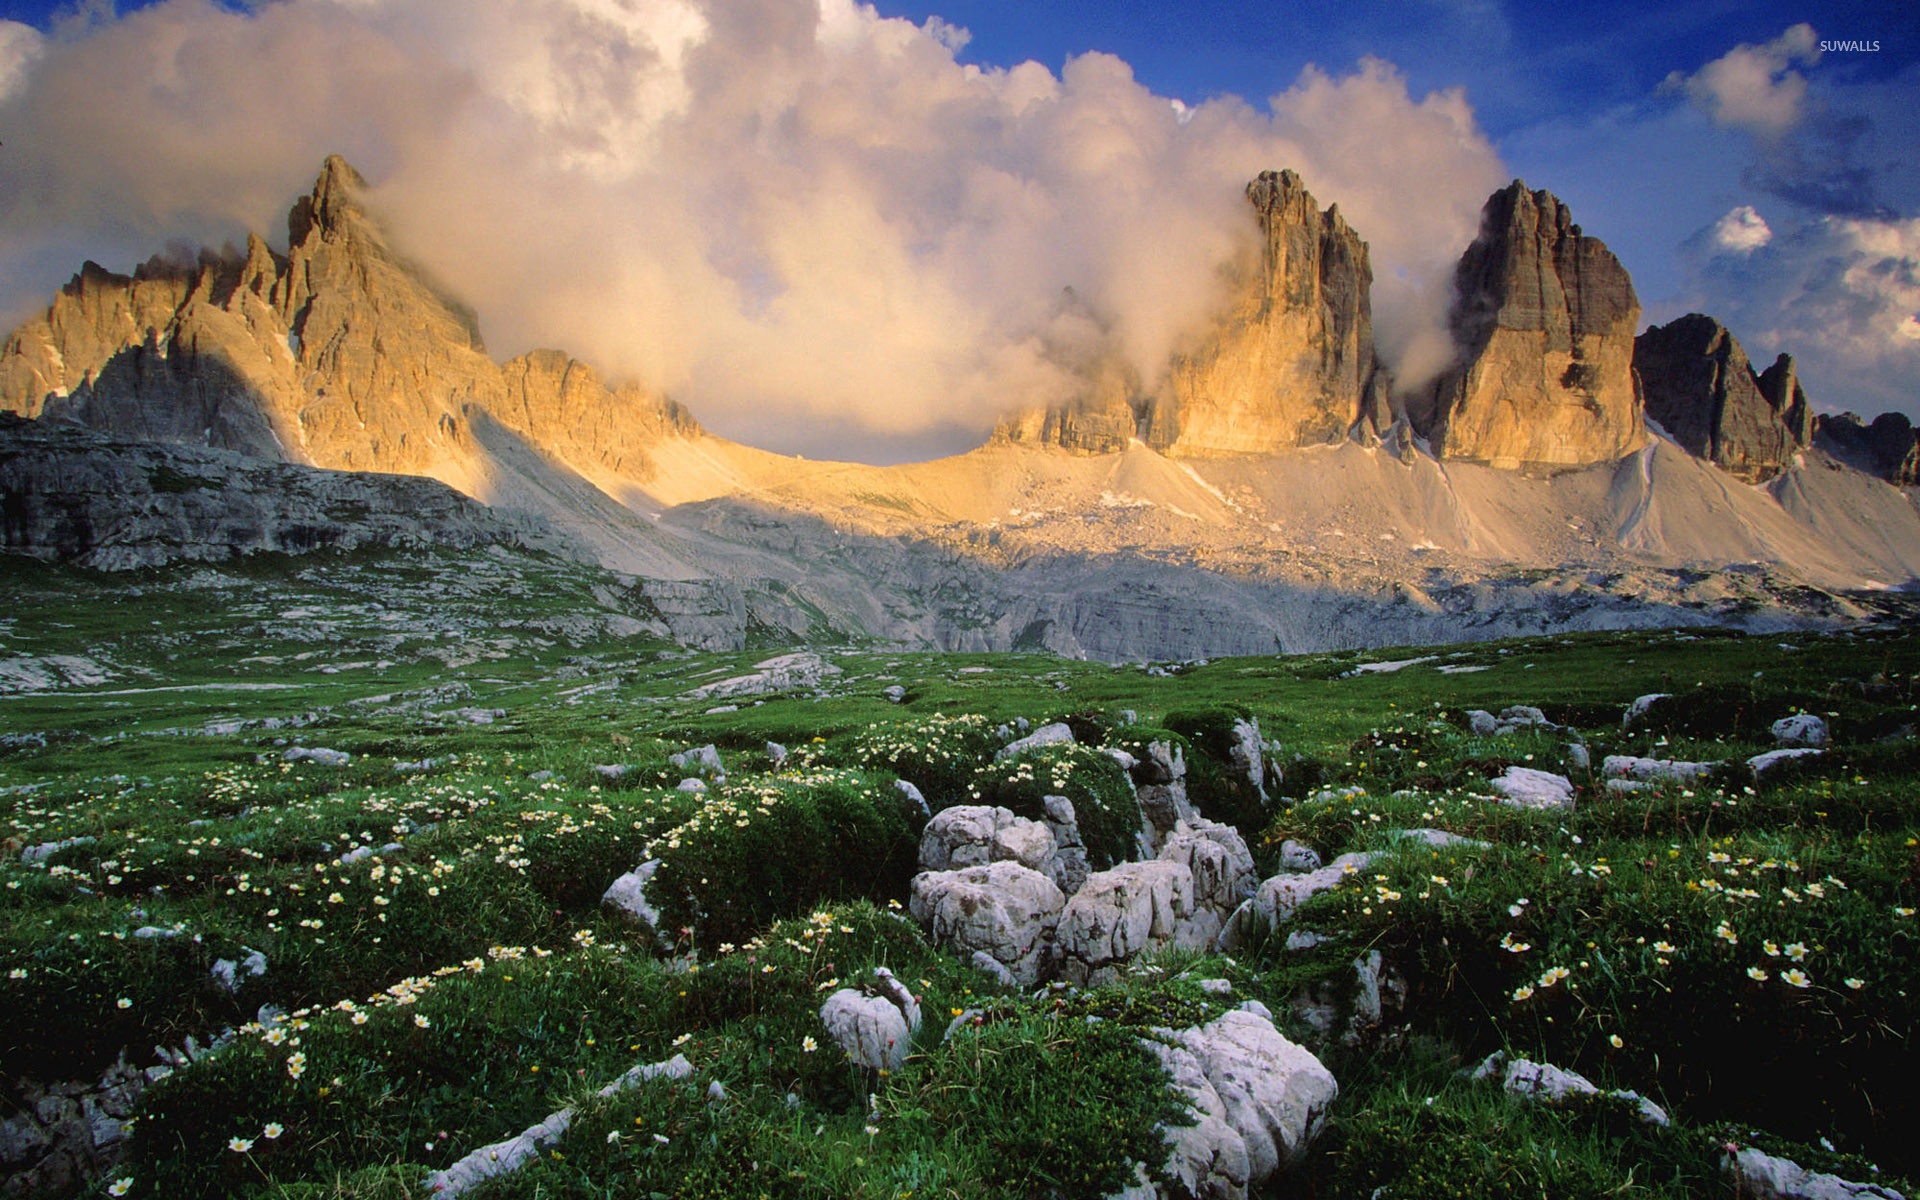 Wallpapers Of Italy Italian Scenery Wallpaper 52 Images